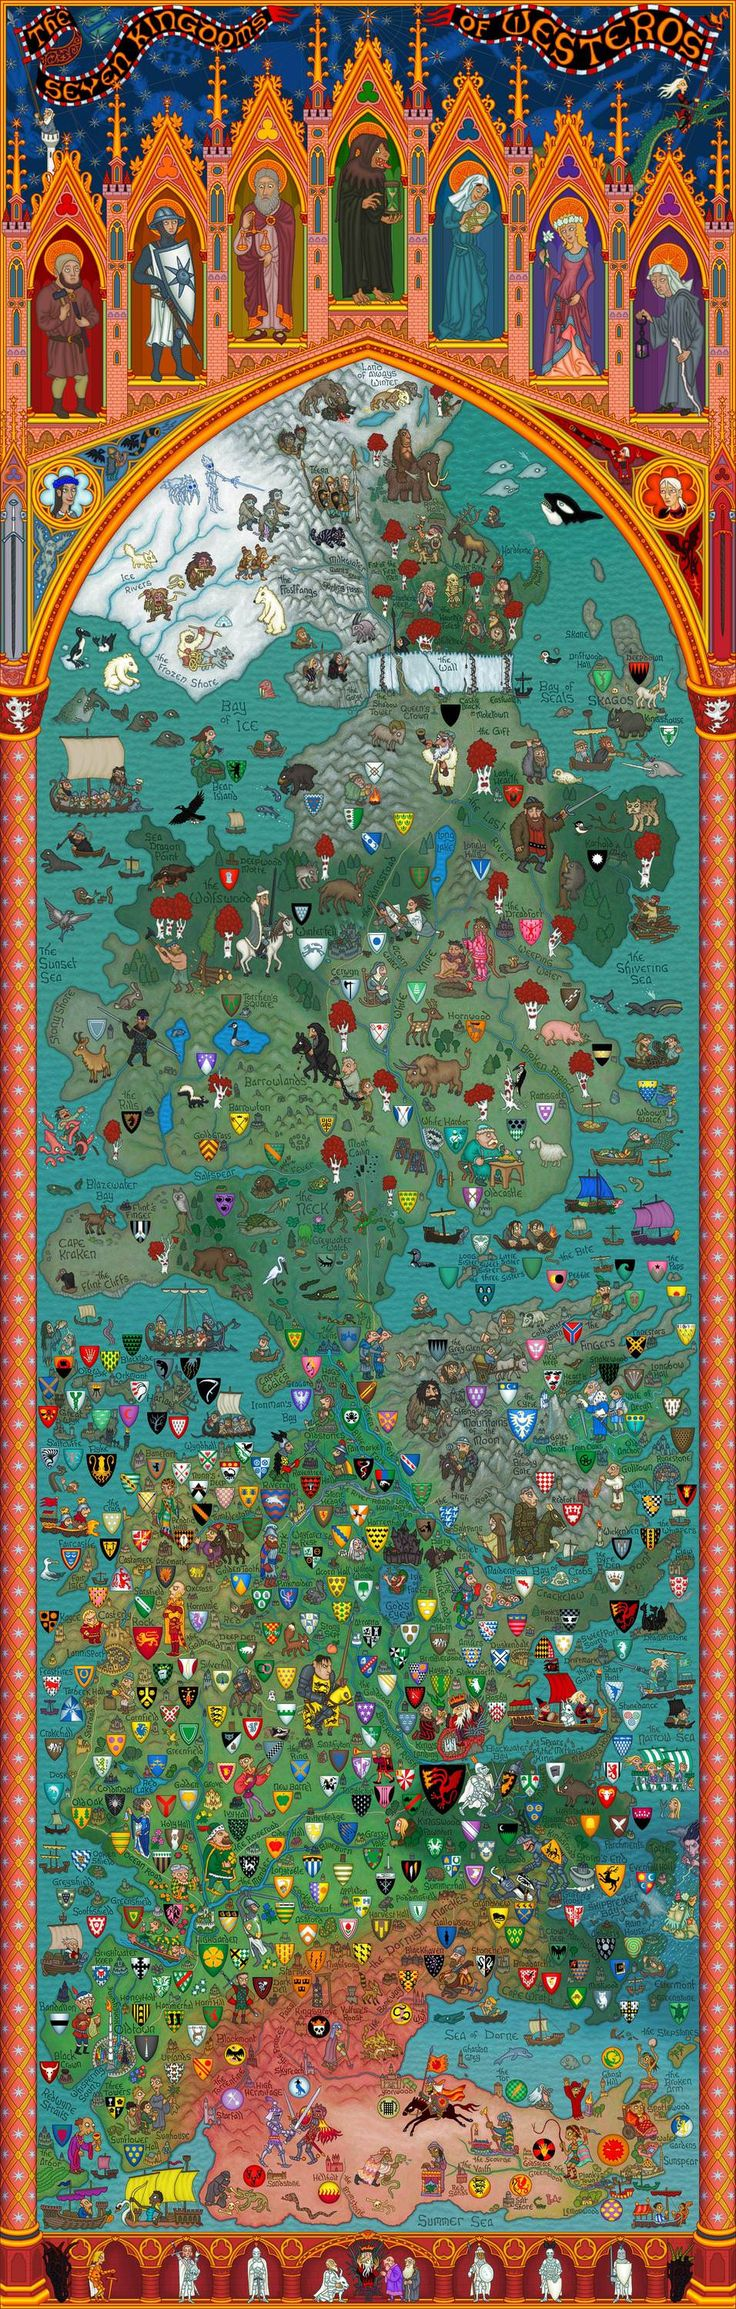 [NO SPOILERS] Hi-res map of Westeros with house sigils by artist Other-In-Law